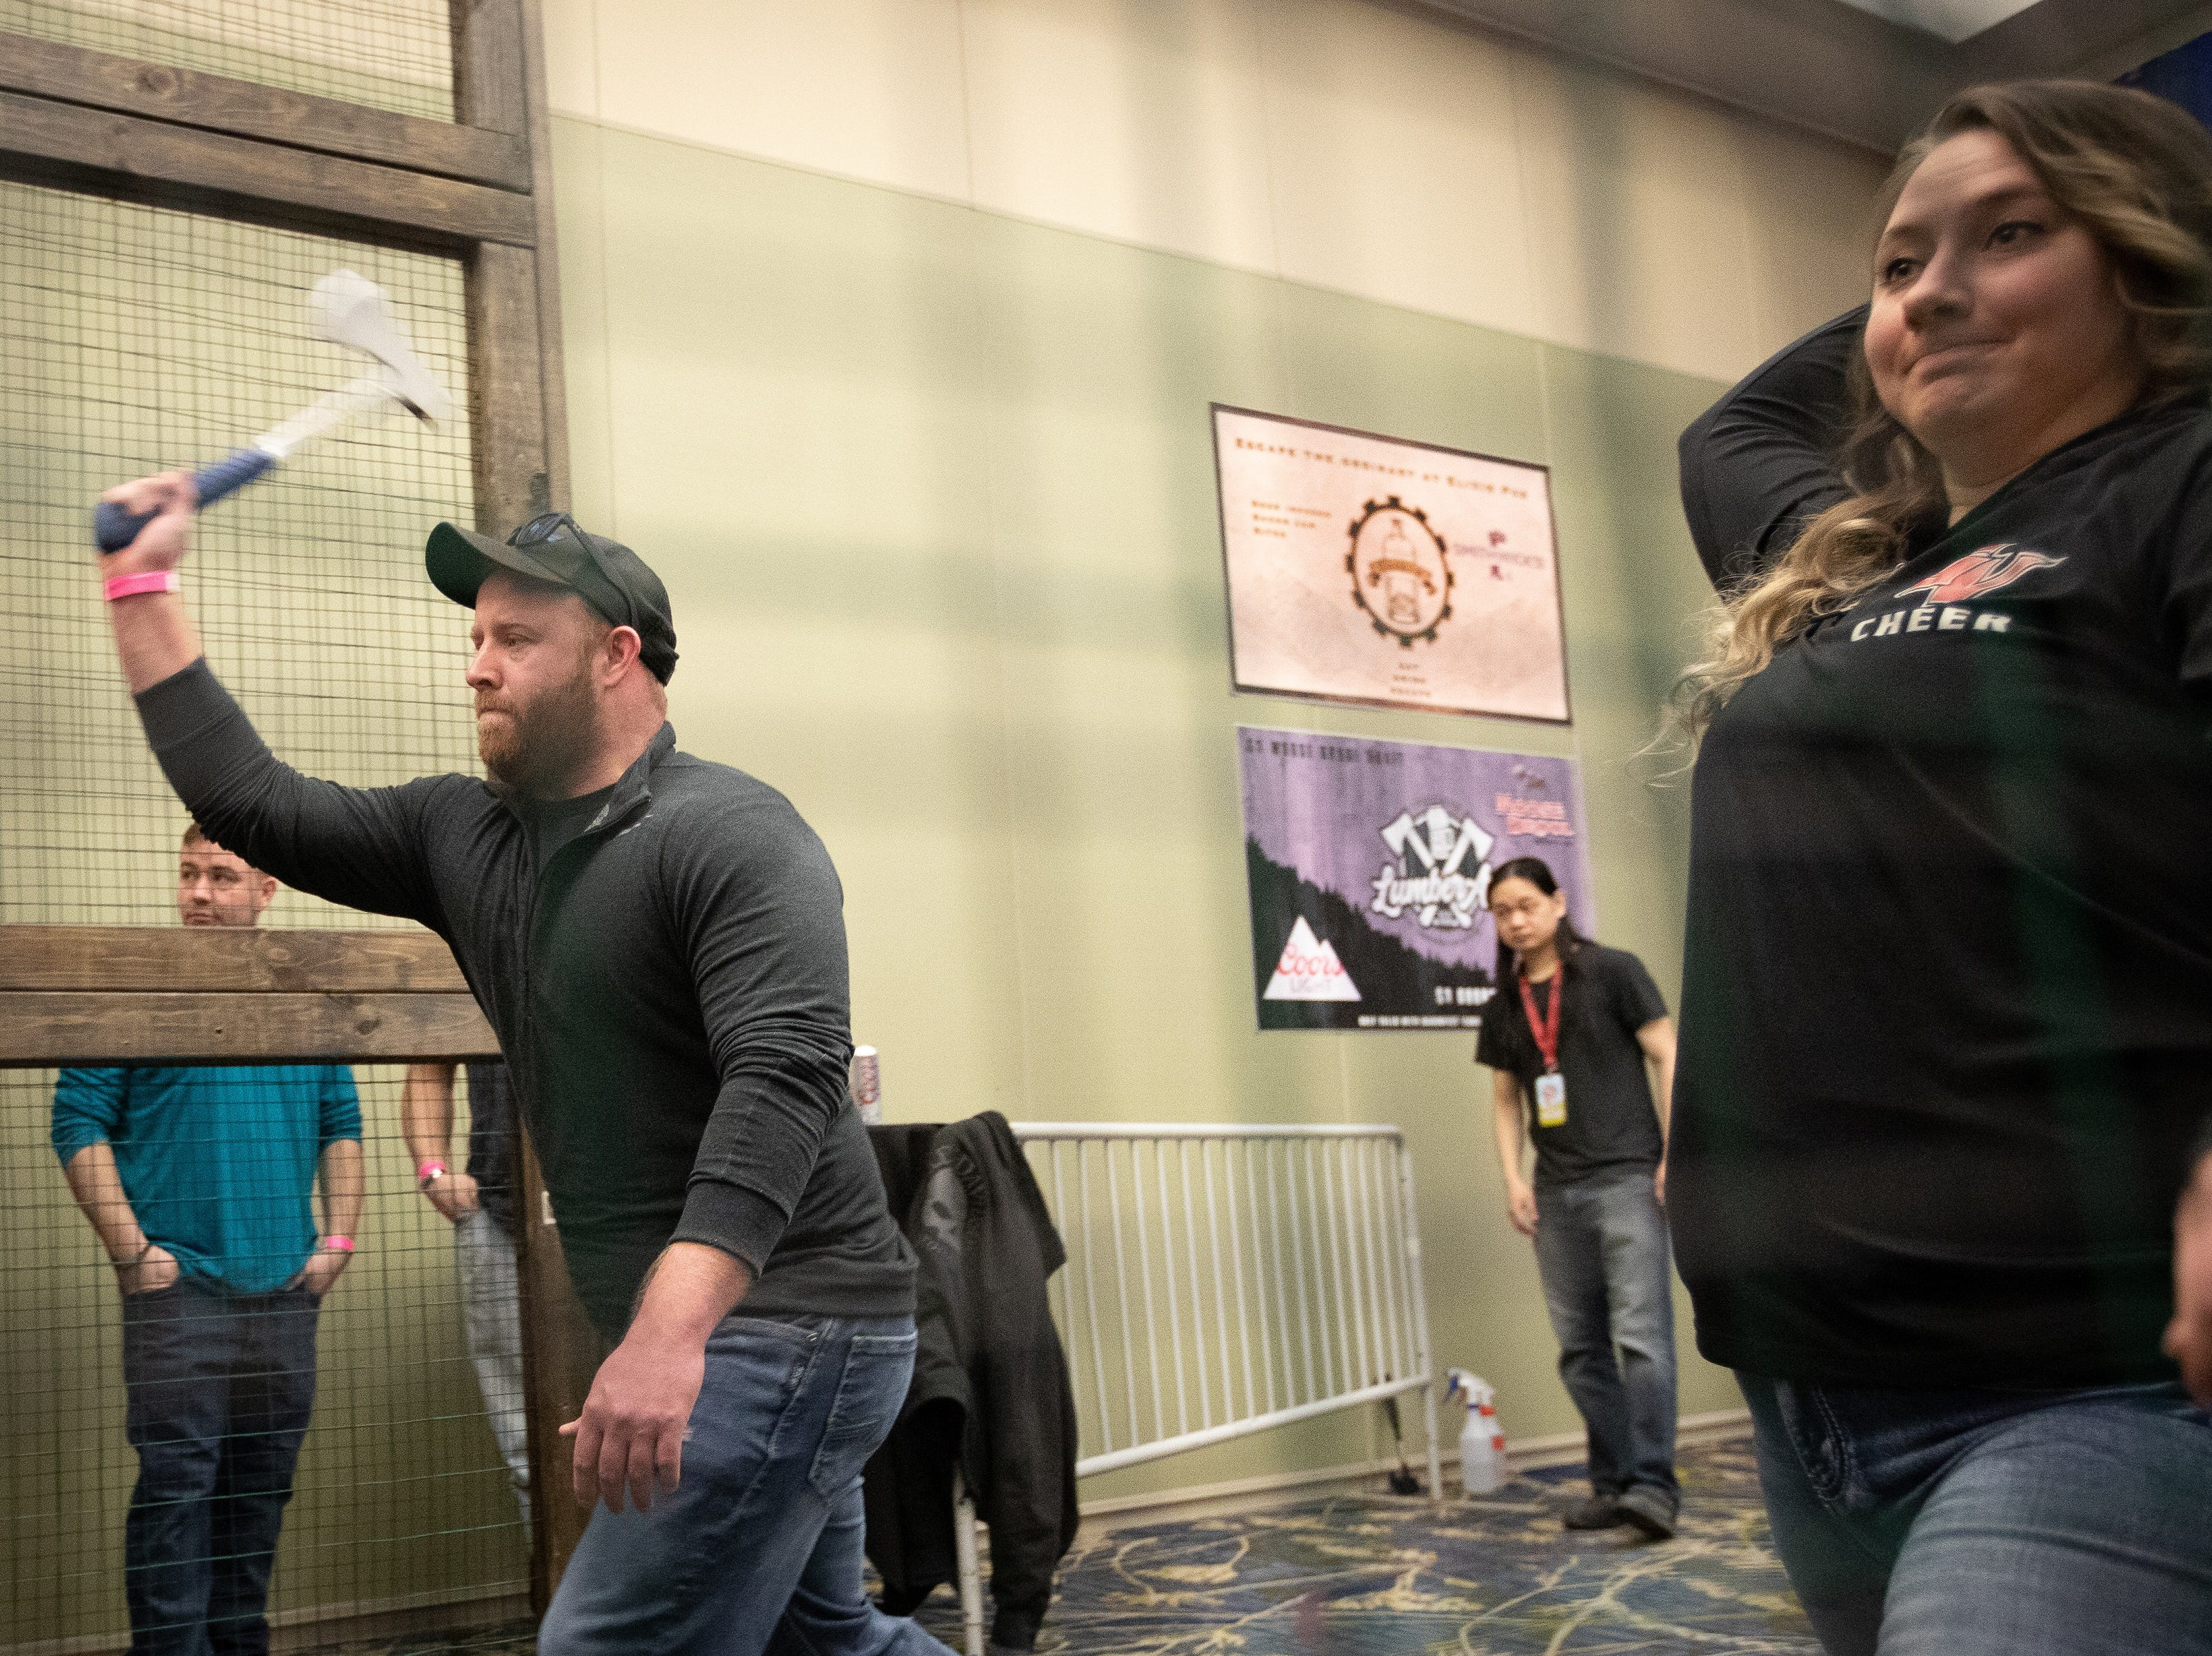 Aaron Brady and Nicole Thys, of Des Moines, throw axes during the Bacon Fest at Hy-Vee Hall on Feb. 16, 2019 in Des Moines, Iowa.